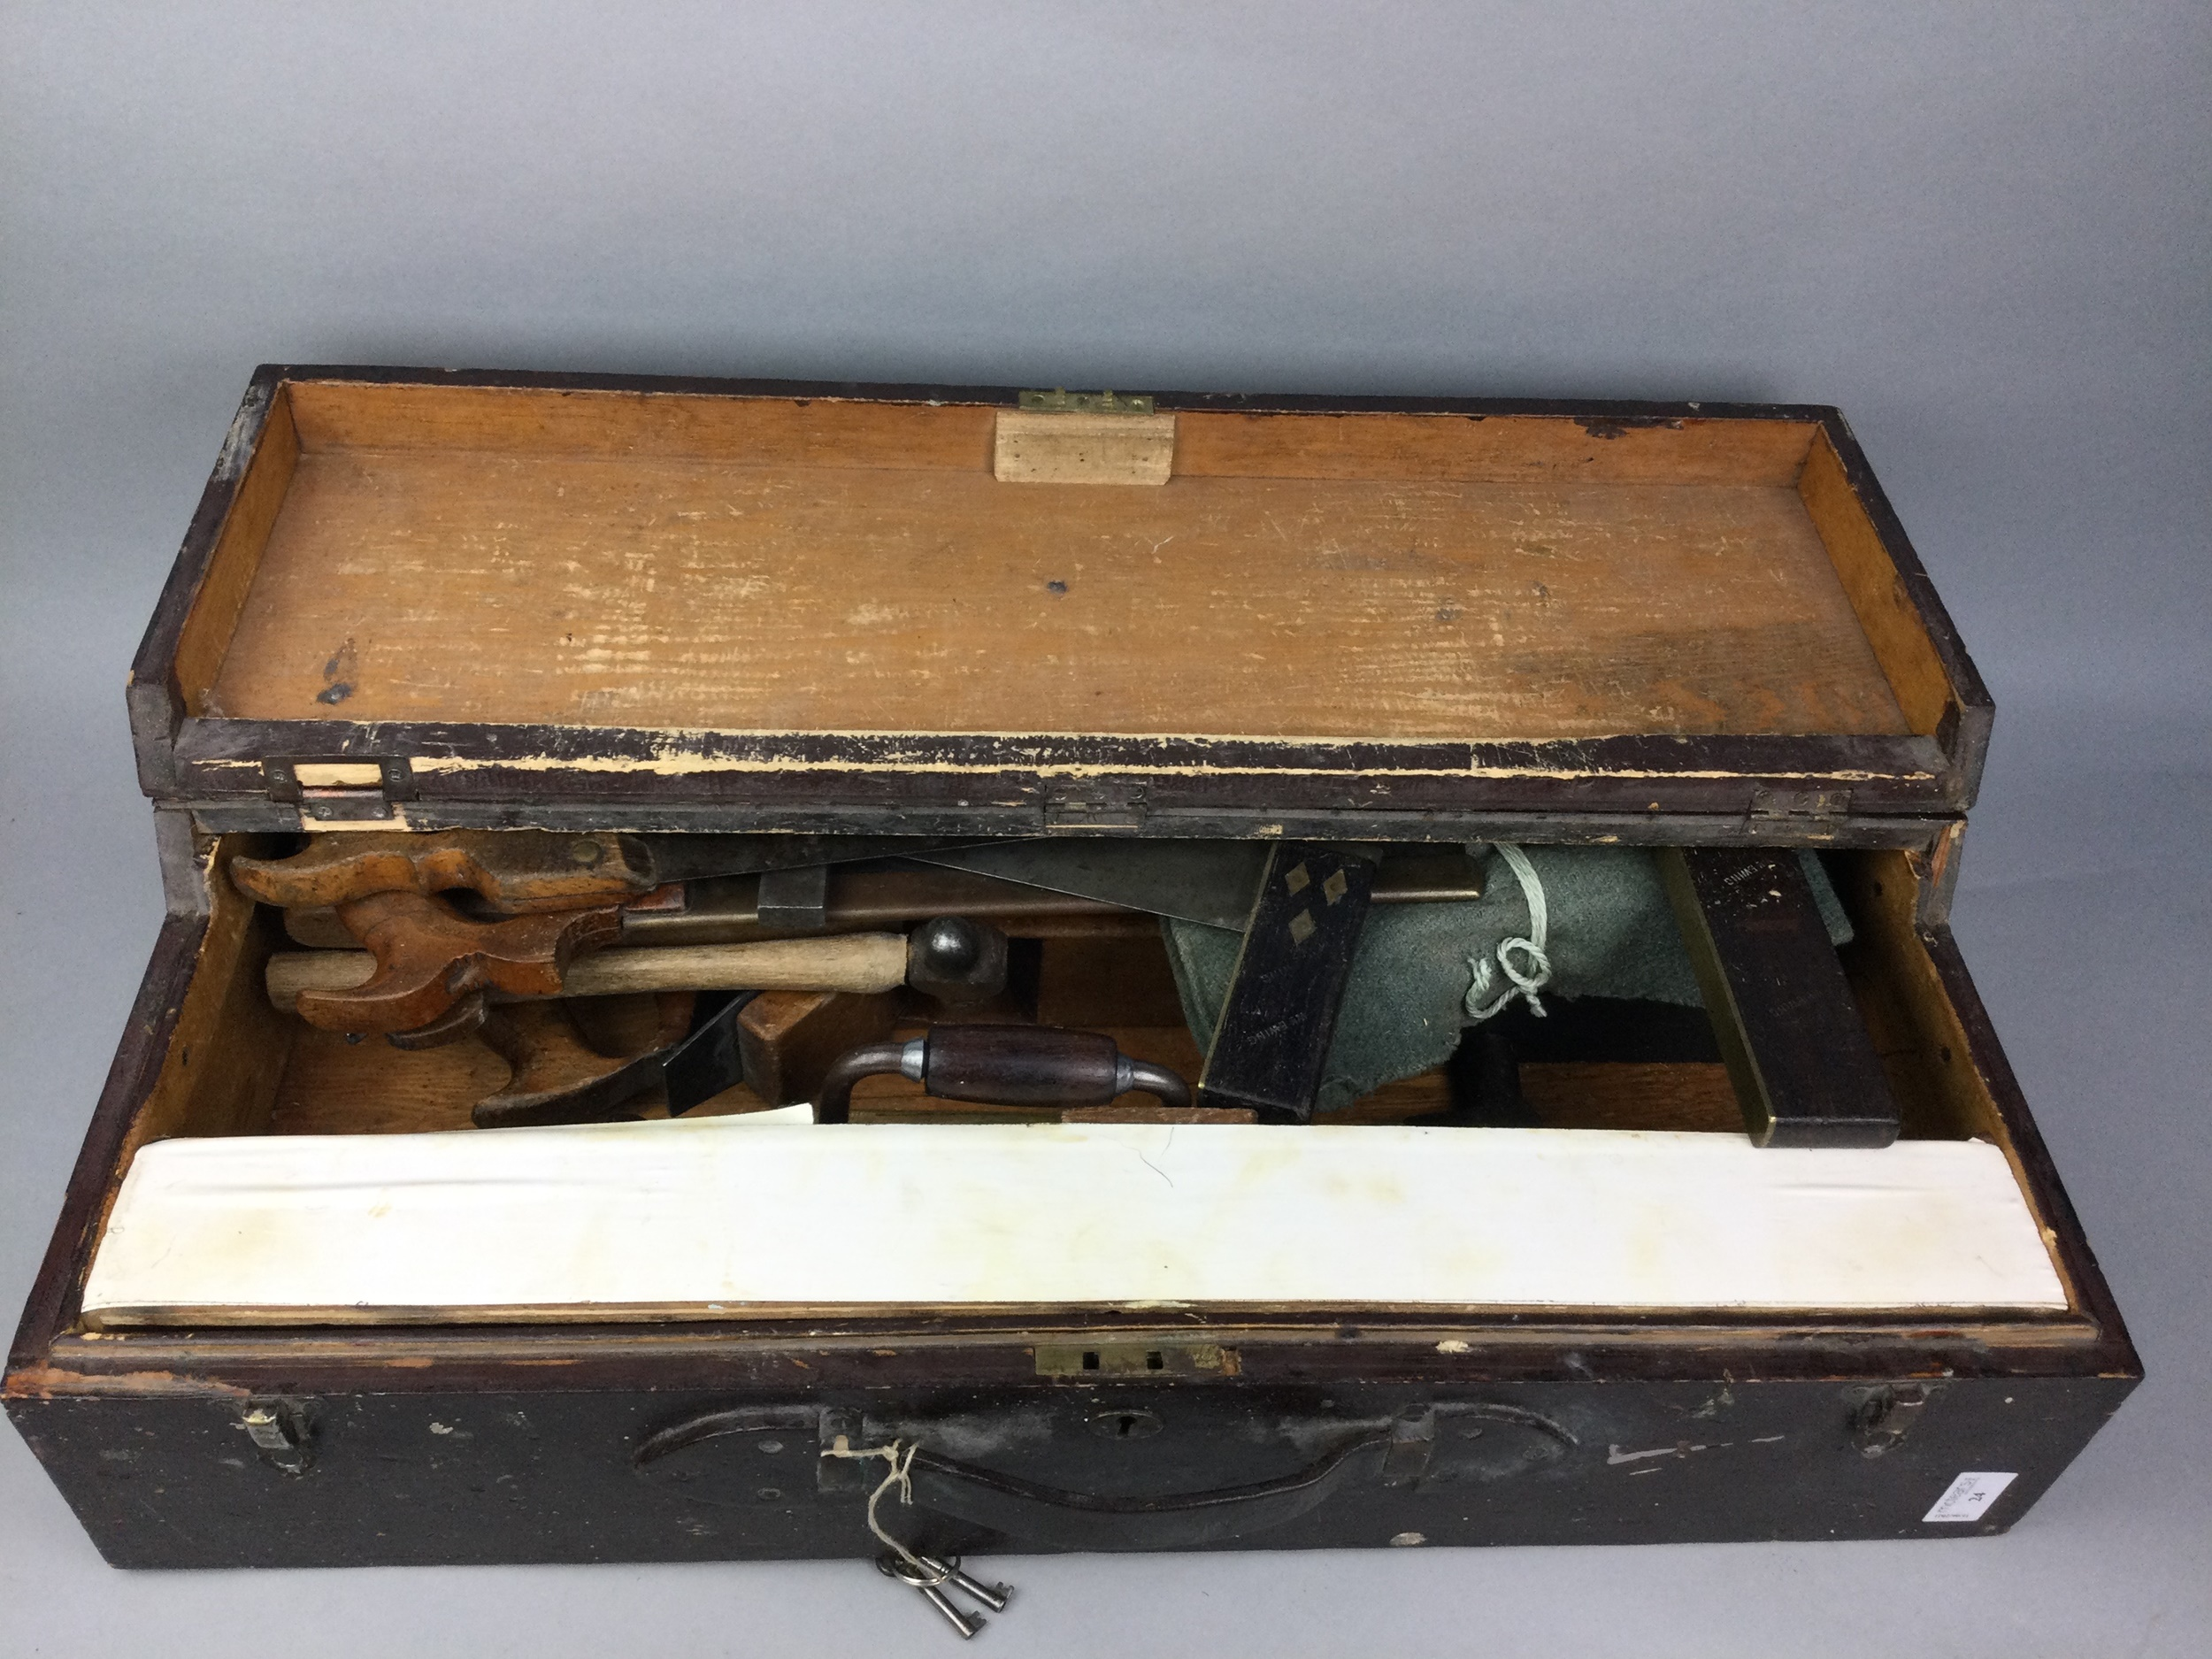 A TOOL BOX CONTAINING A GOOD SELECTION OF EARLY 20TH CENTURY TOOLS